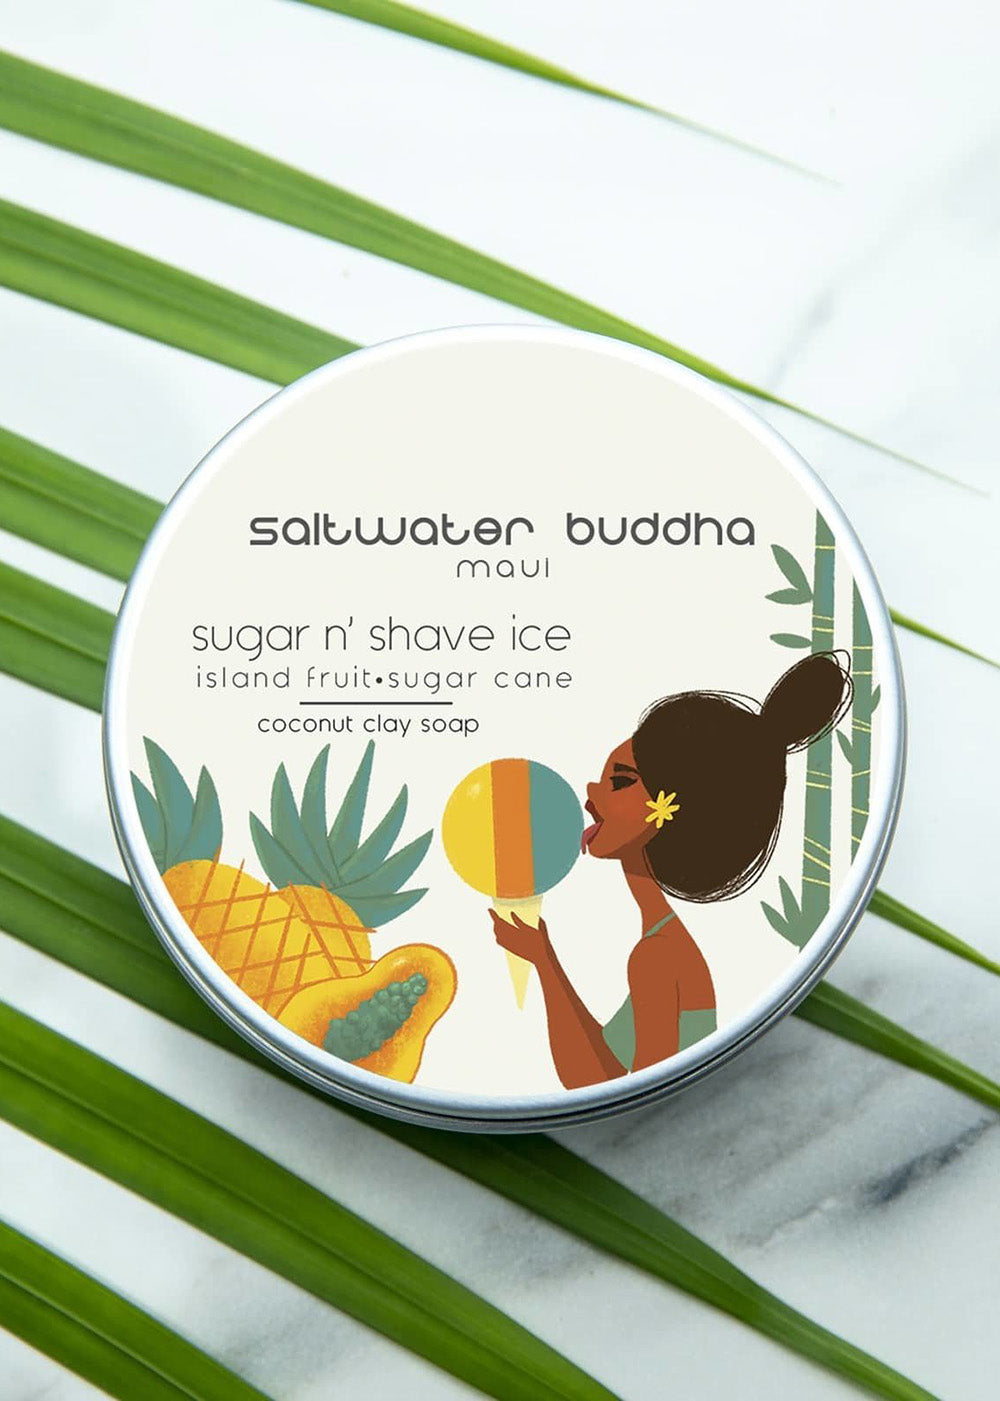 Saltwater Buddha Maui Soap |Sugar and Shave Ice|